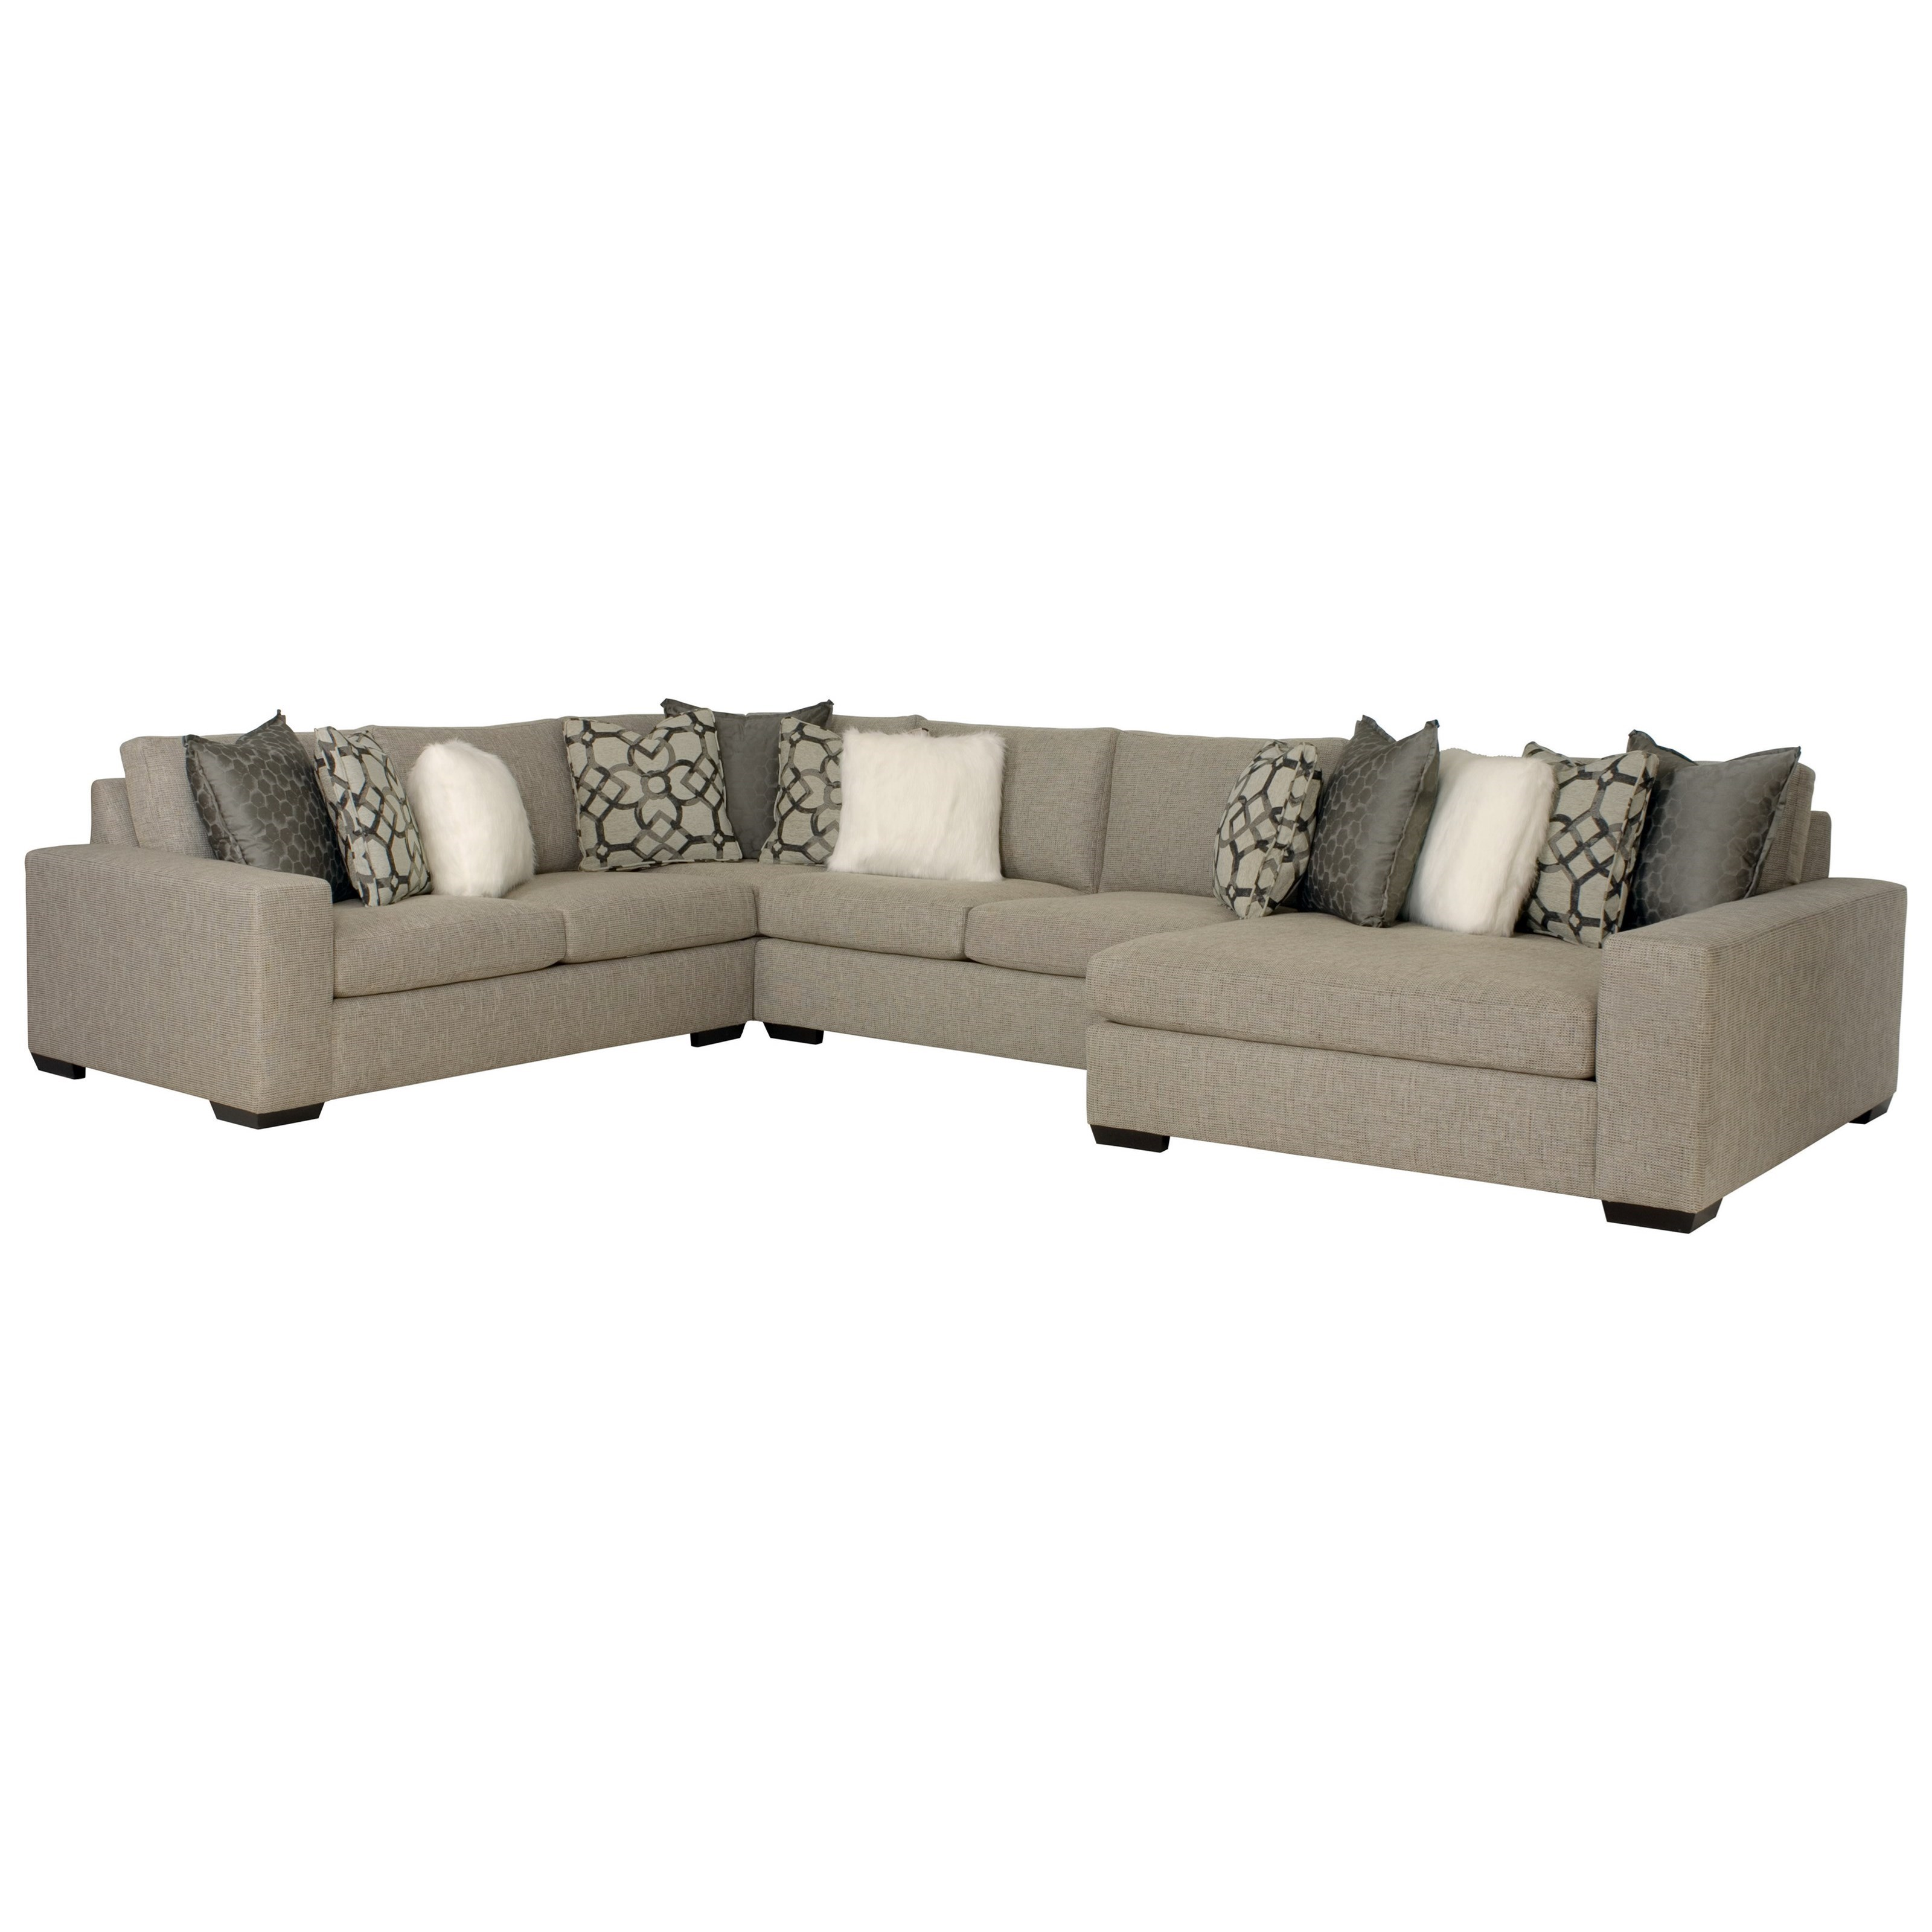 Bernhardt Orlando Sectional Sofa With Right Facing Chaise